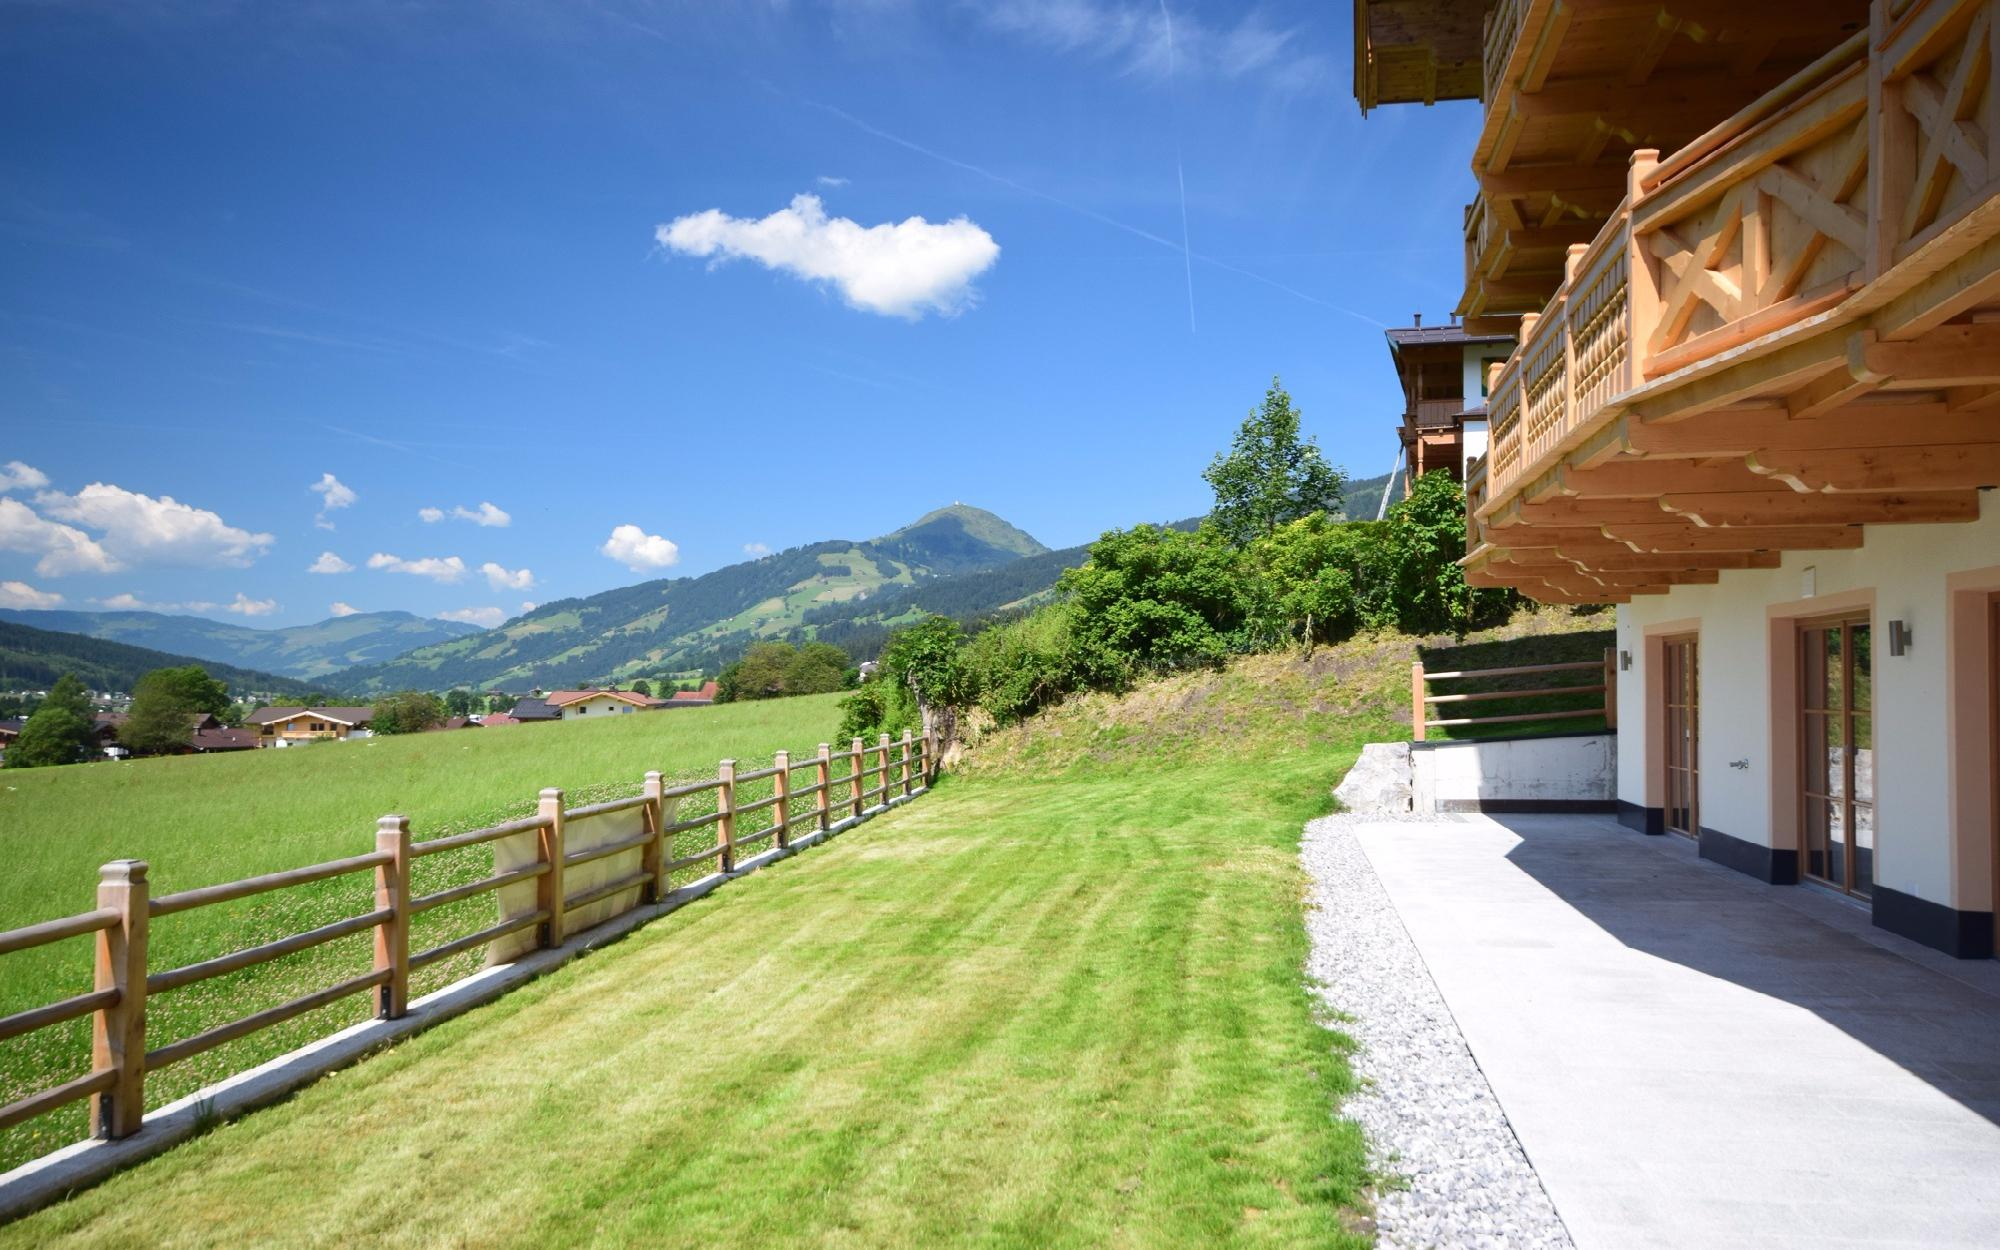 Penthouse & apartment in an unobstructed sunny view in Kirchberg For Sale - Kirchberg